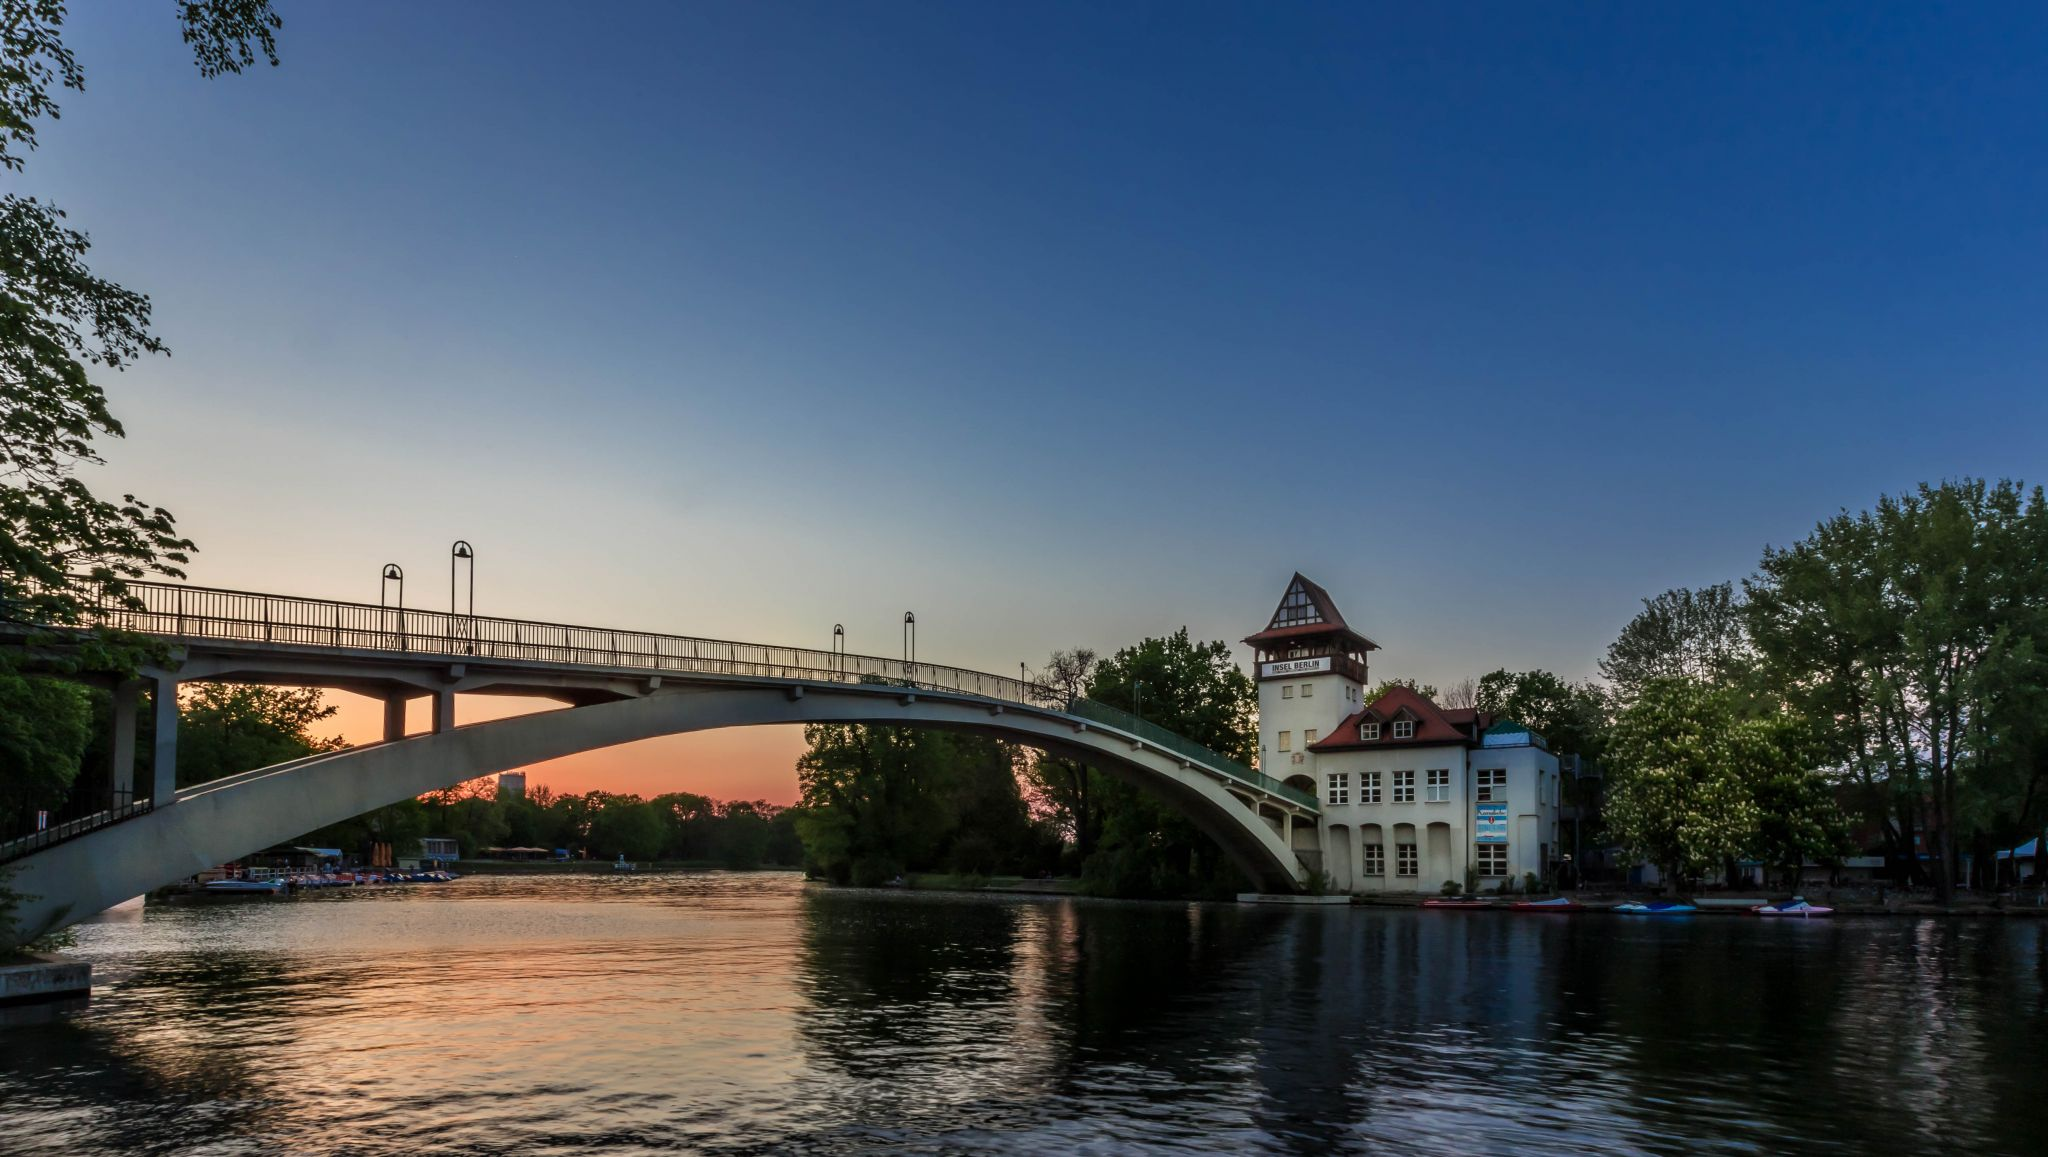 Insel der Jugend (Island of Youth), Berlin, Germany